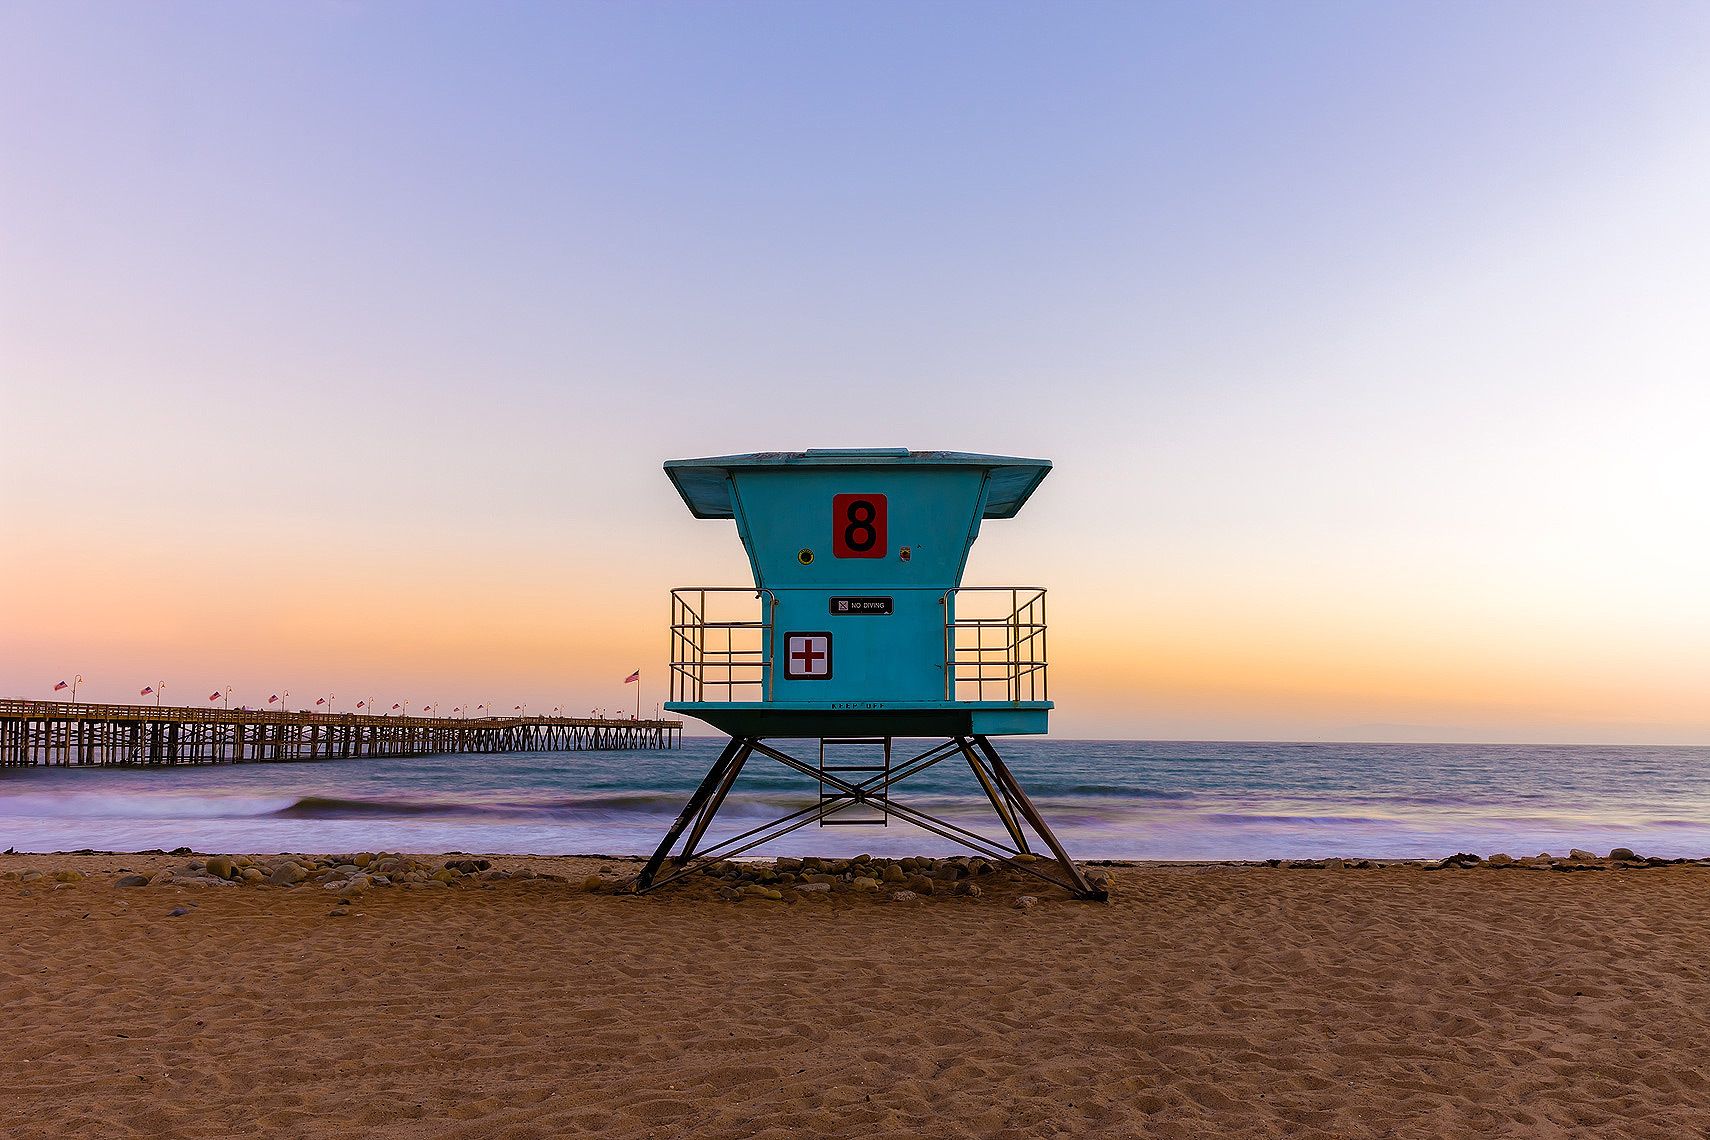 Ventura, California, USA - lifeguard station, beach